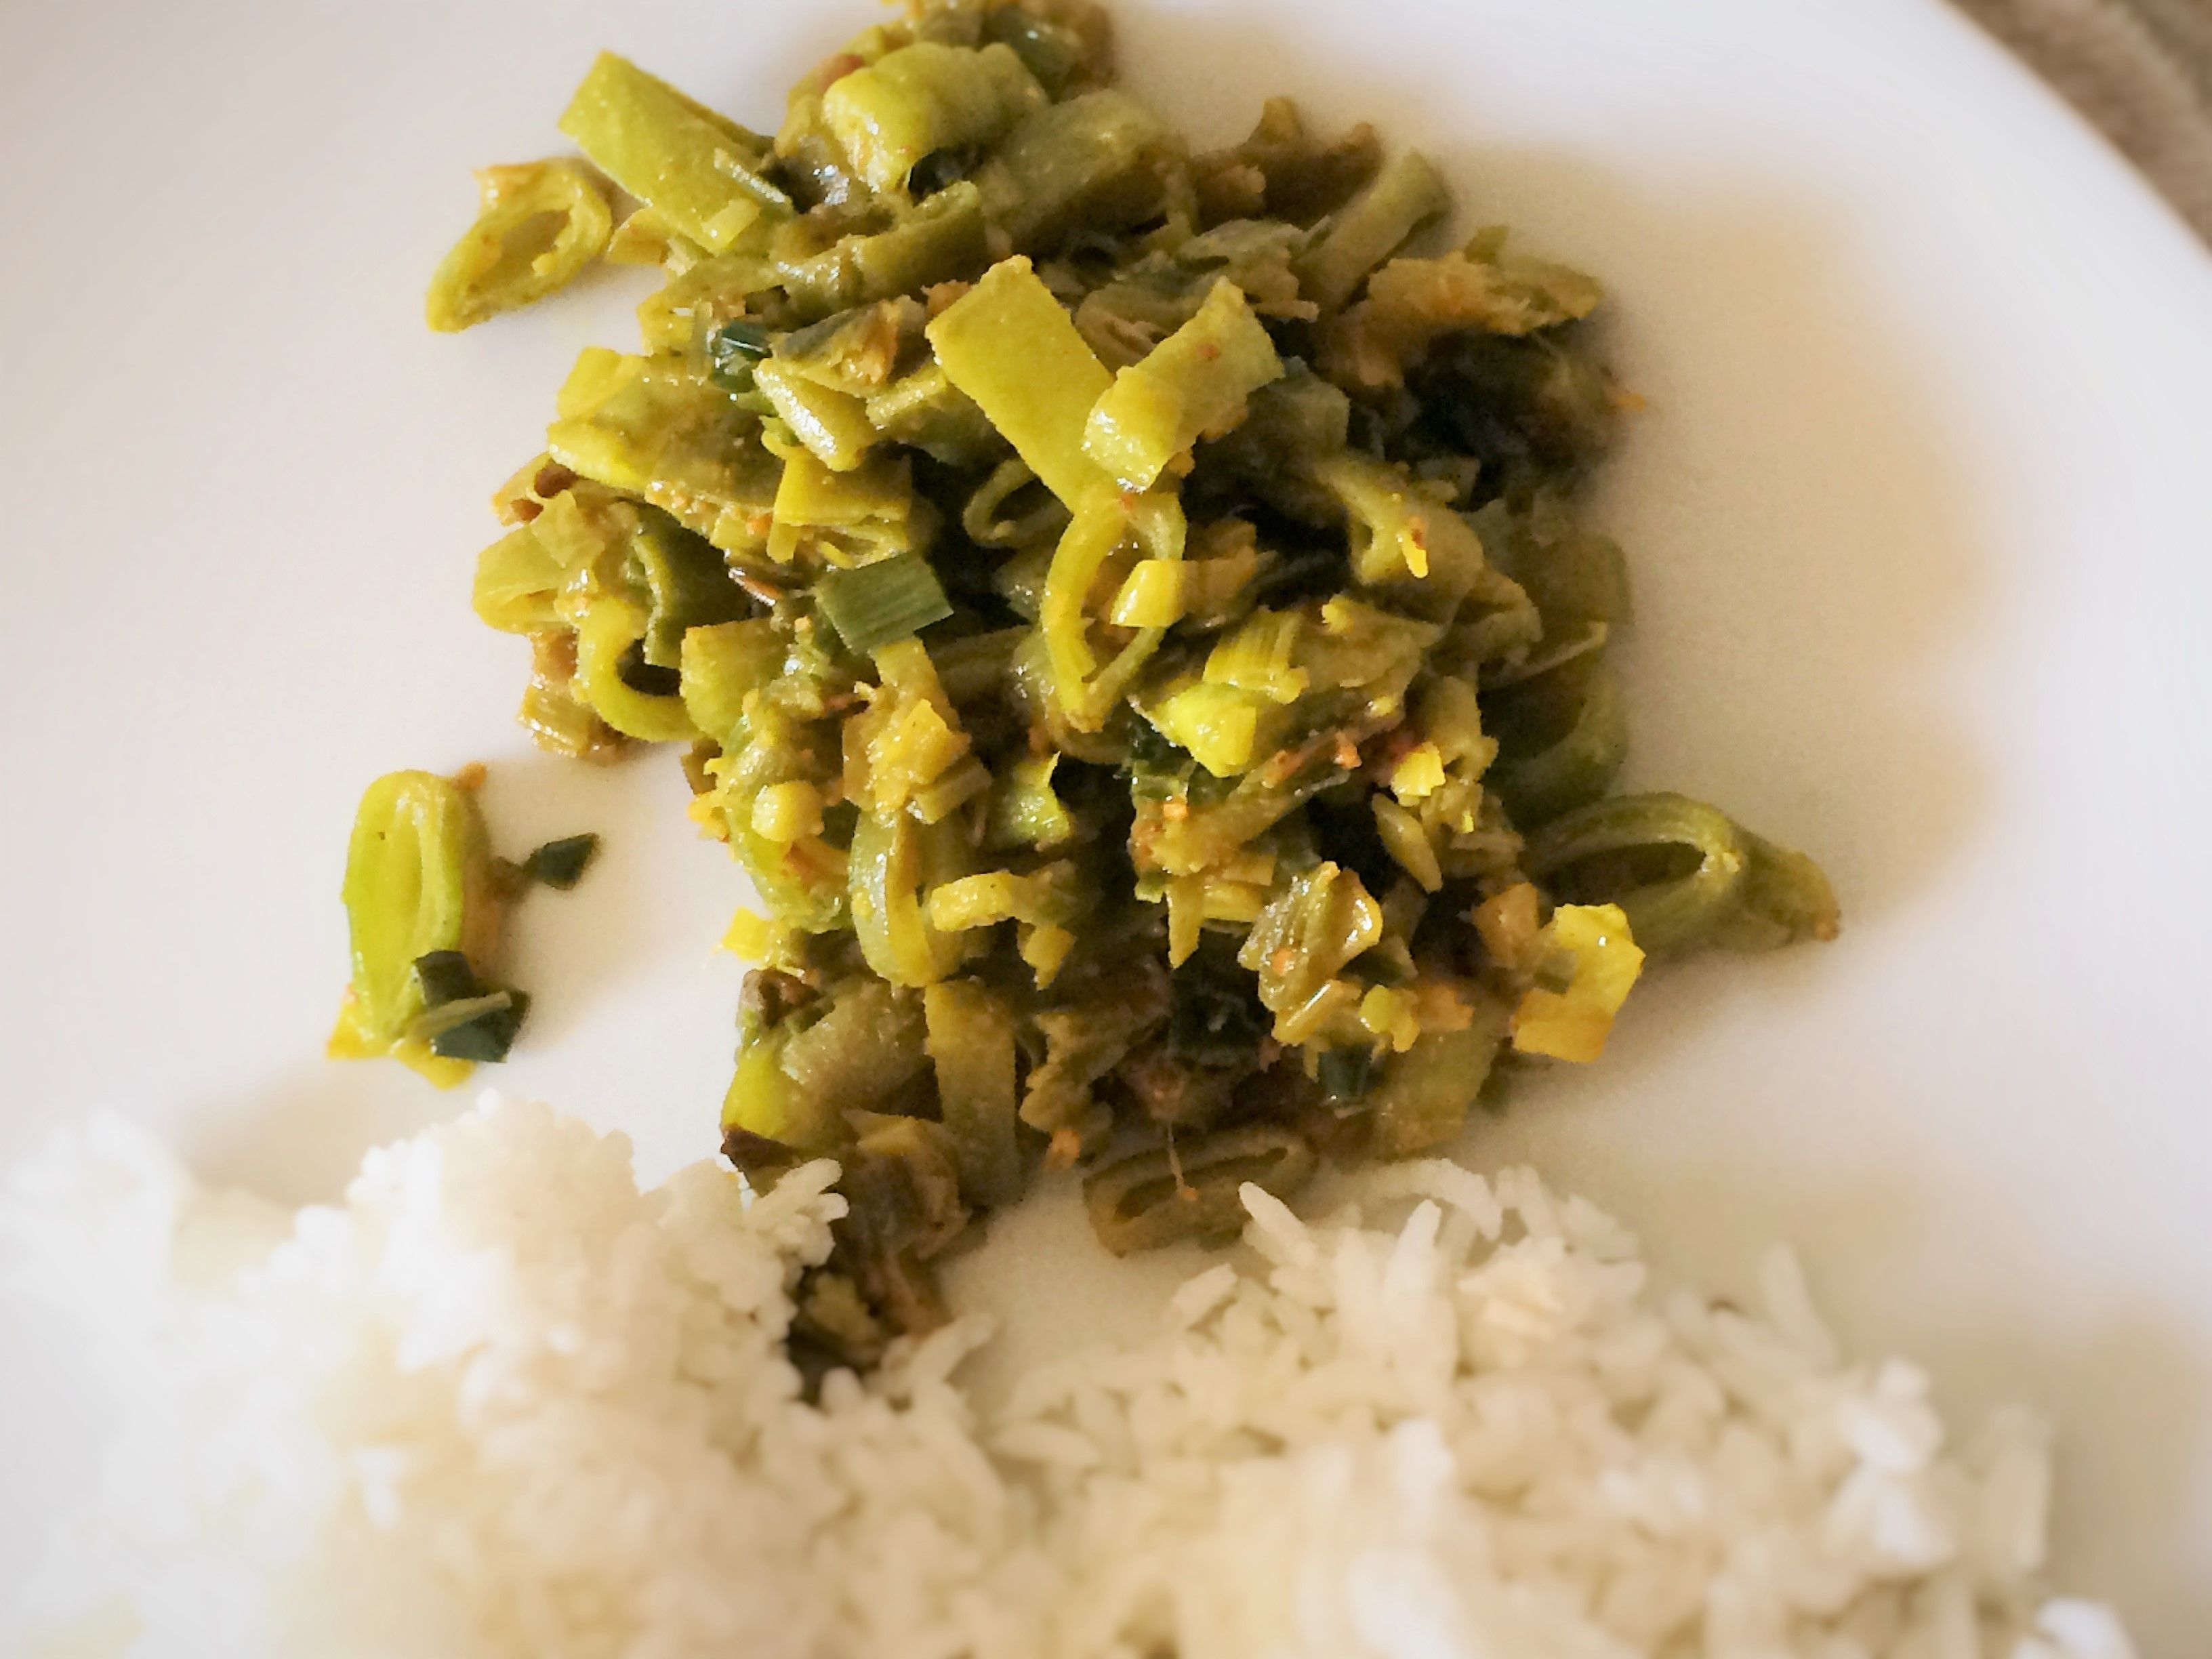 Spicy runner beans with leeks beans and recipes spicy runner beans with leeks runner beansindian recipesspicyindian food recipes forumfinder Choice Image